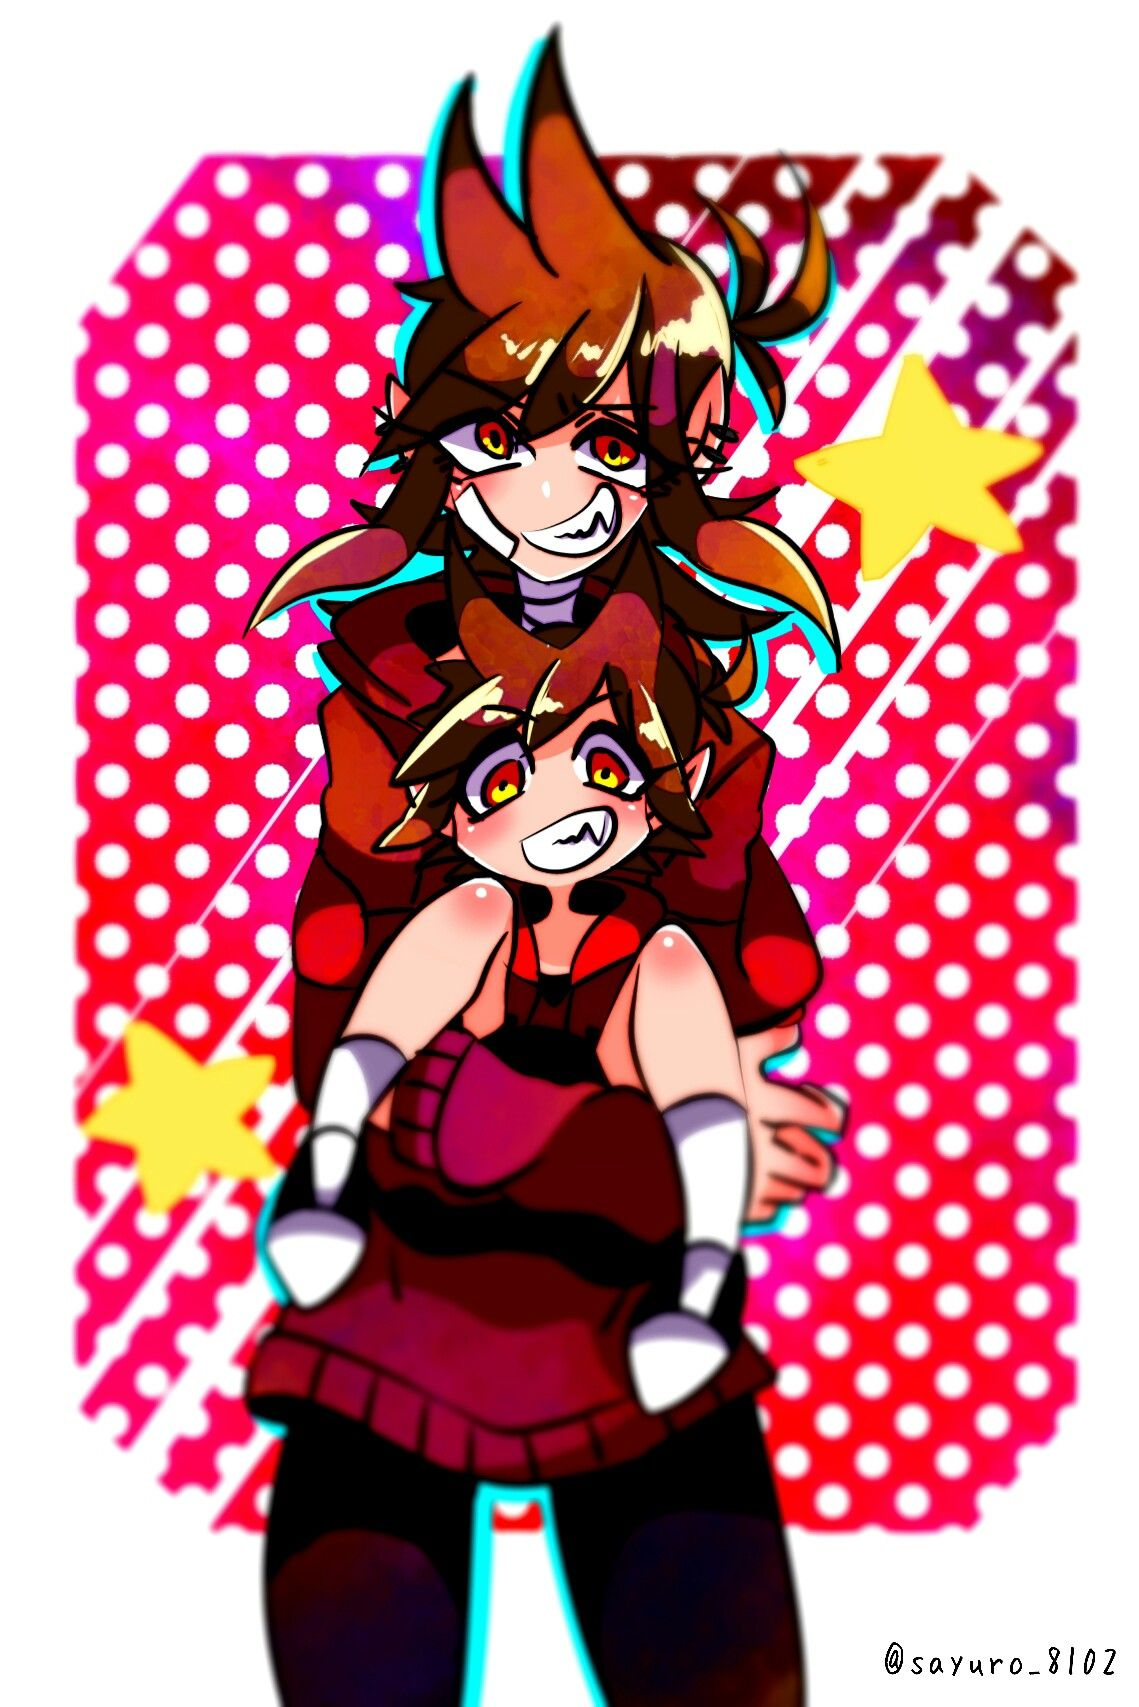 Don't know if that's tomtord or tordtom but       it's cute